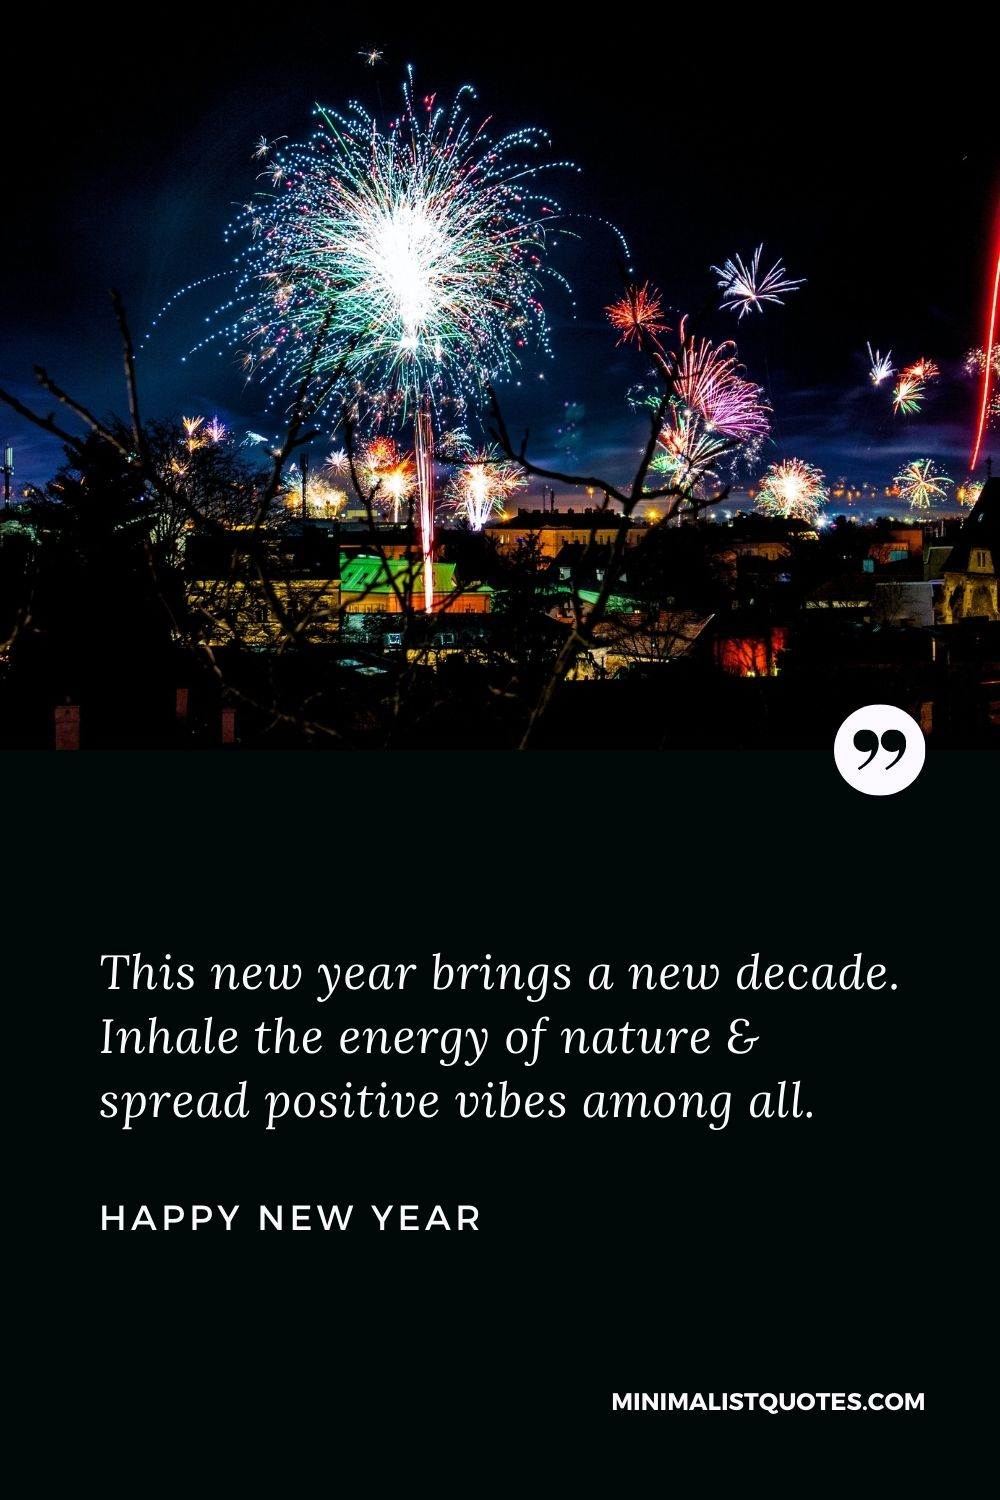 New Year Wish - This new year brings a new decade. Inhale the energy of nature & spread positive vibes among all.